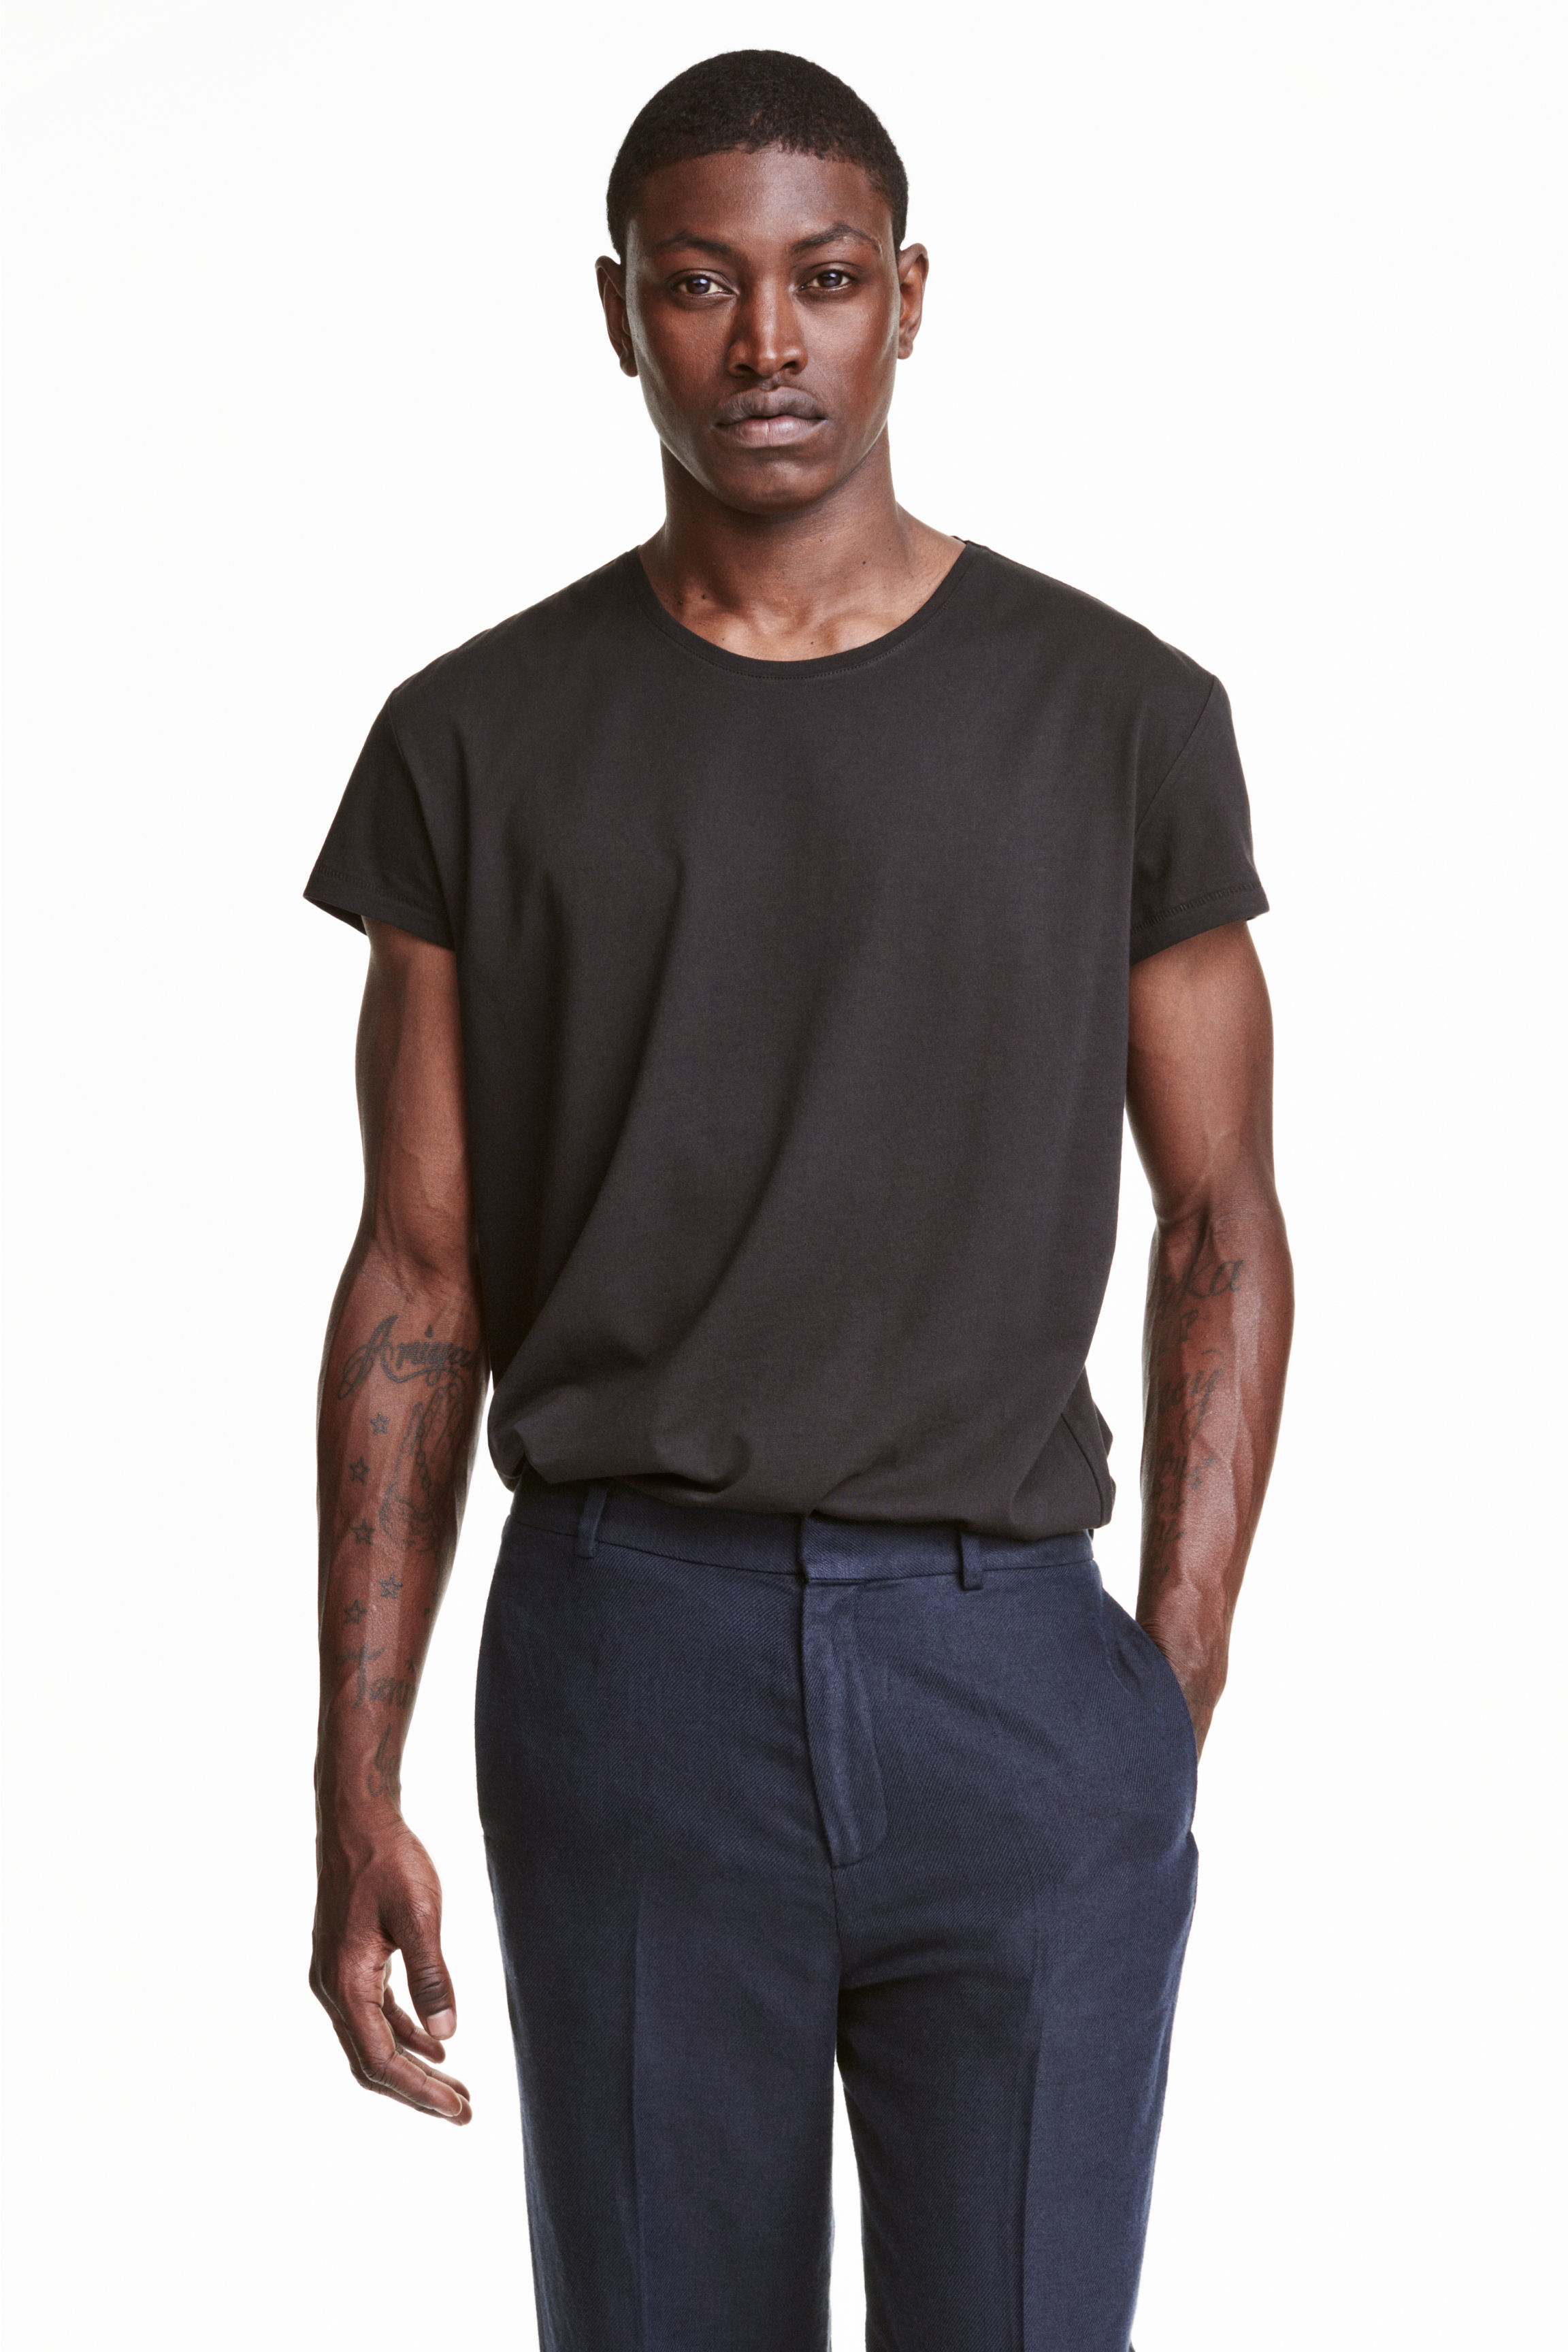 H m t shirt in black for men lyst for Bear river workwear shirts